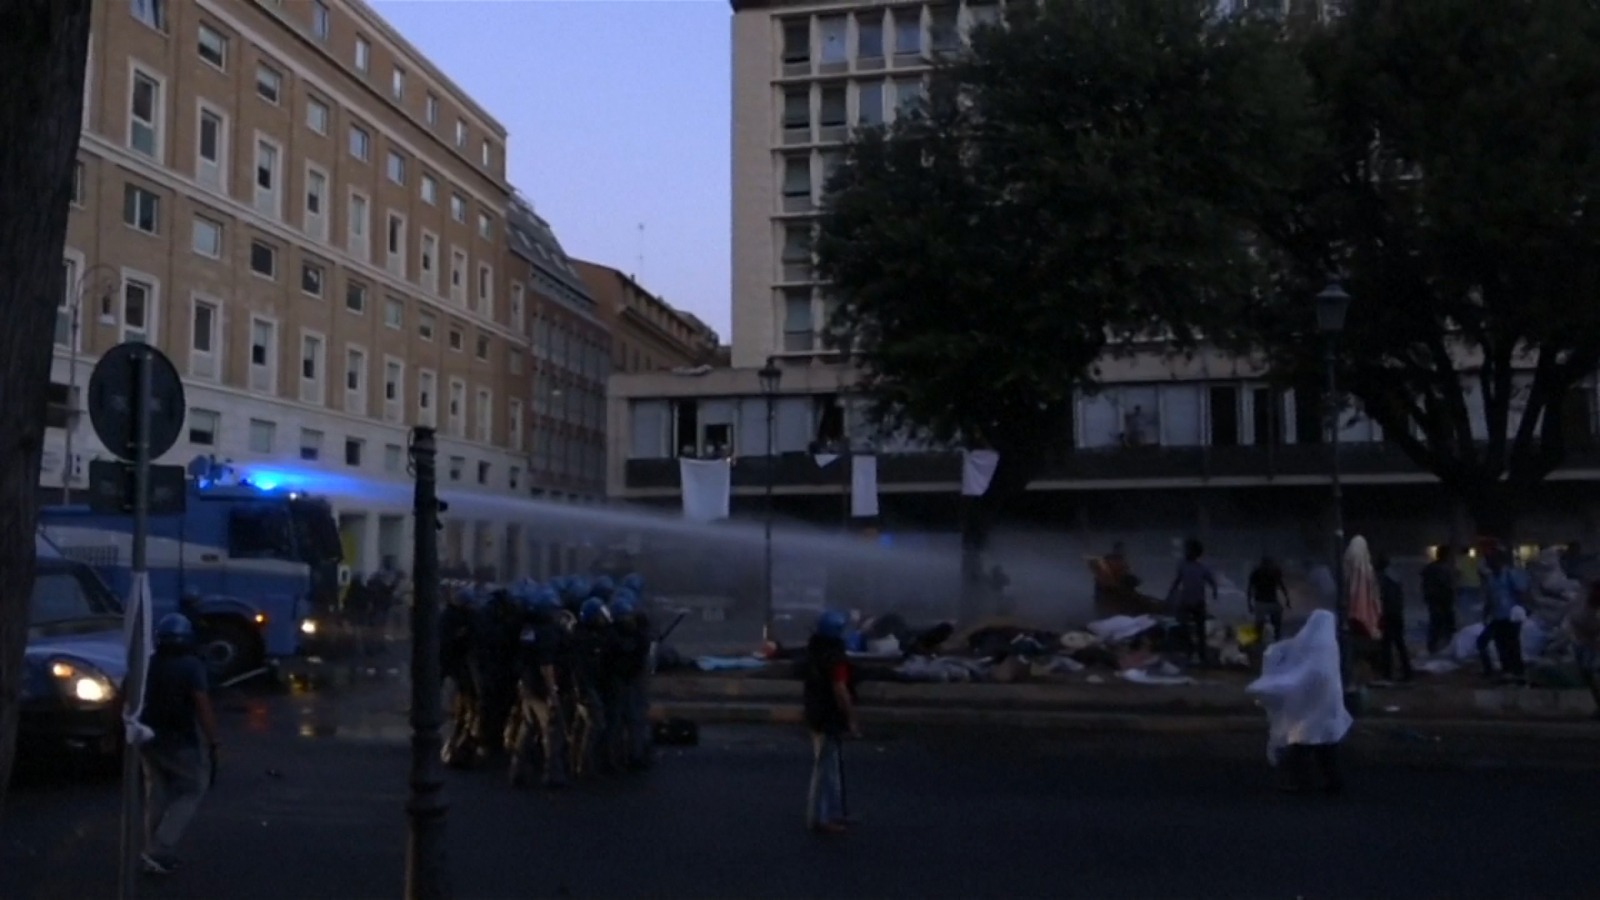 police-use-water-cannons-on-refugees-in-rome